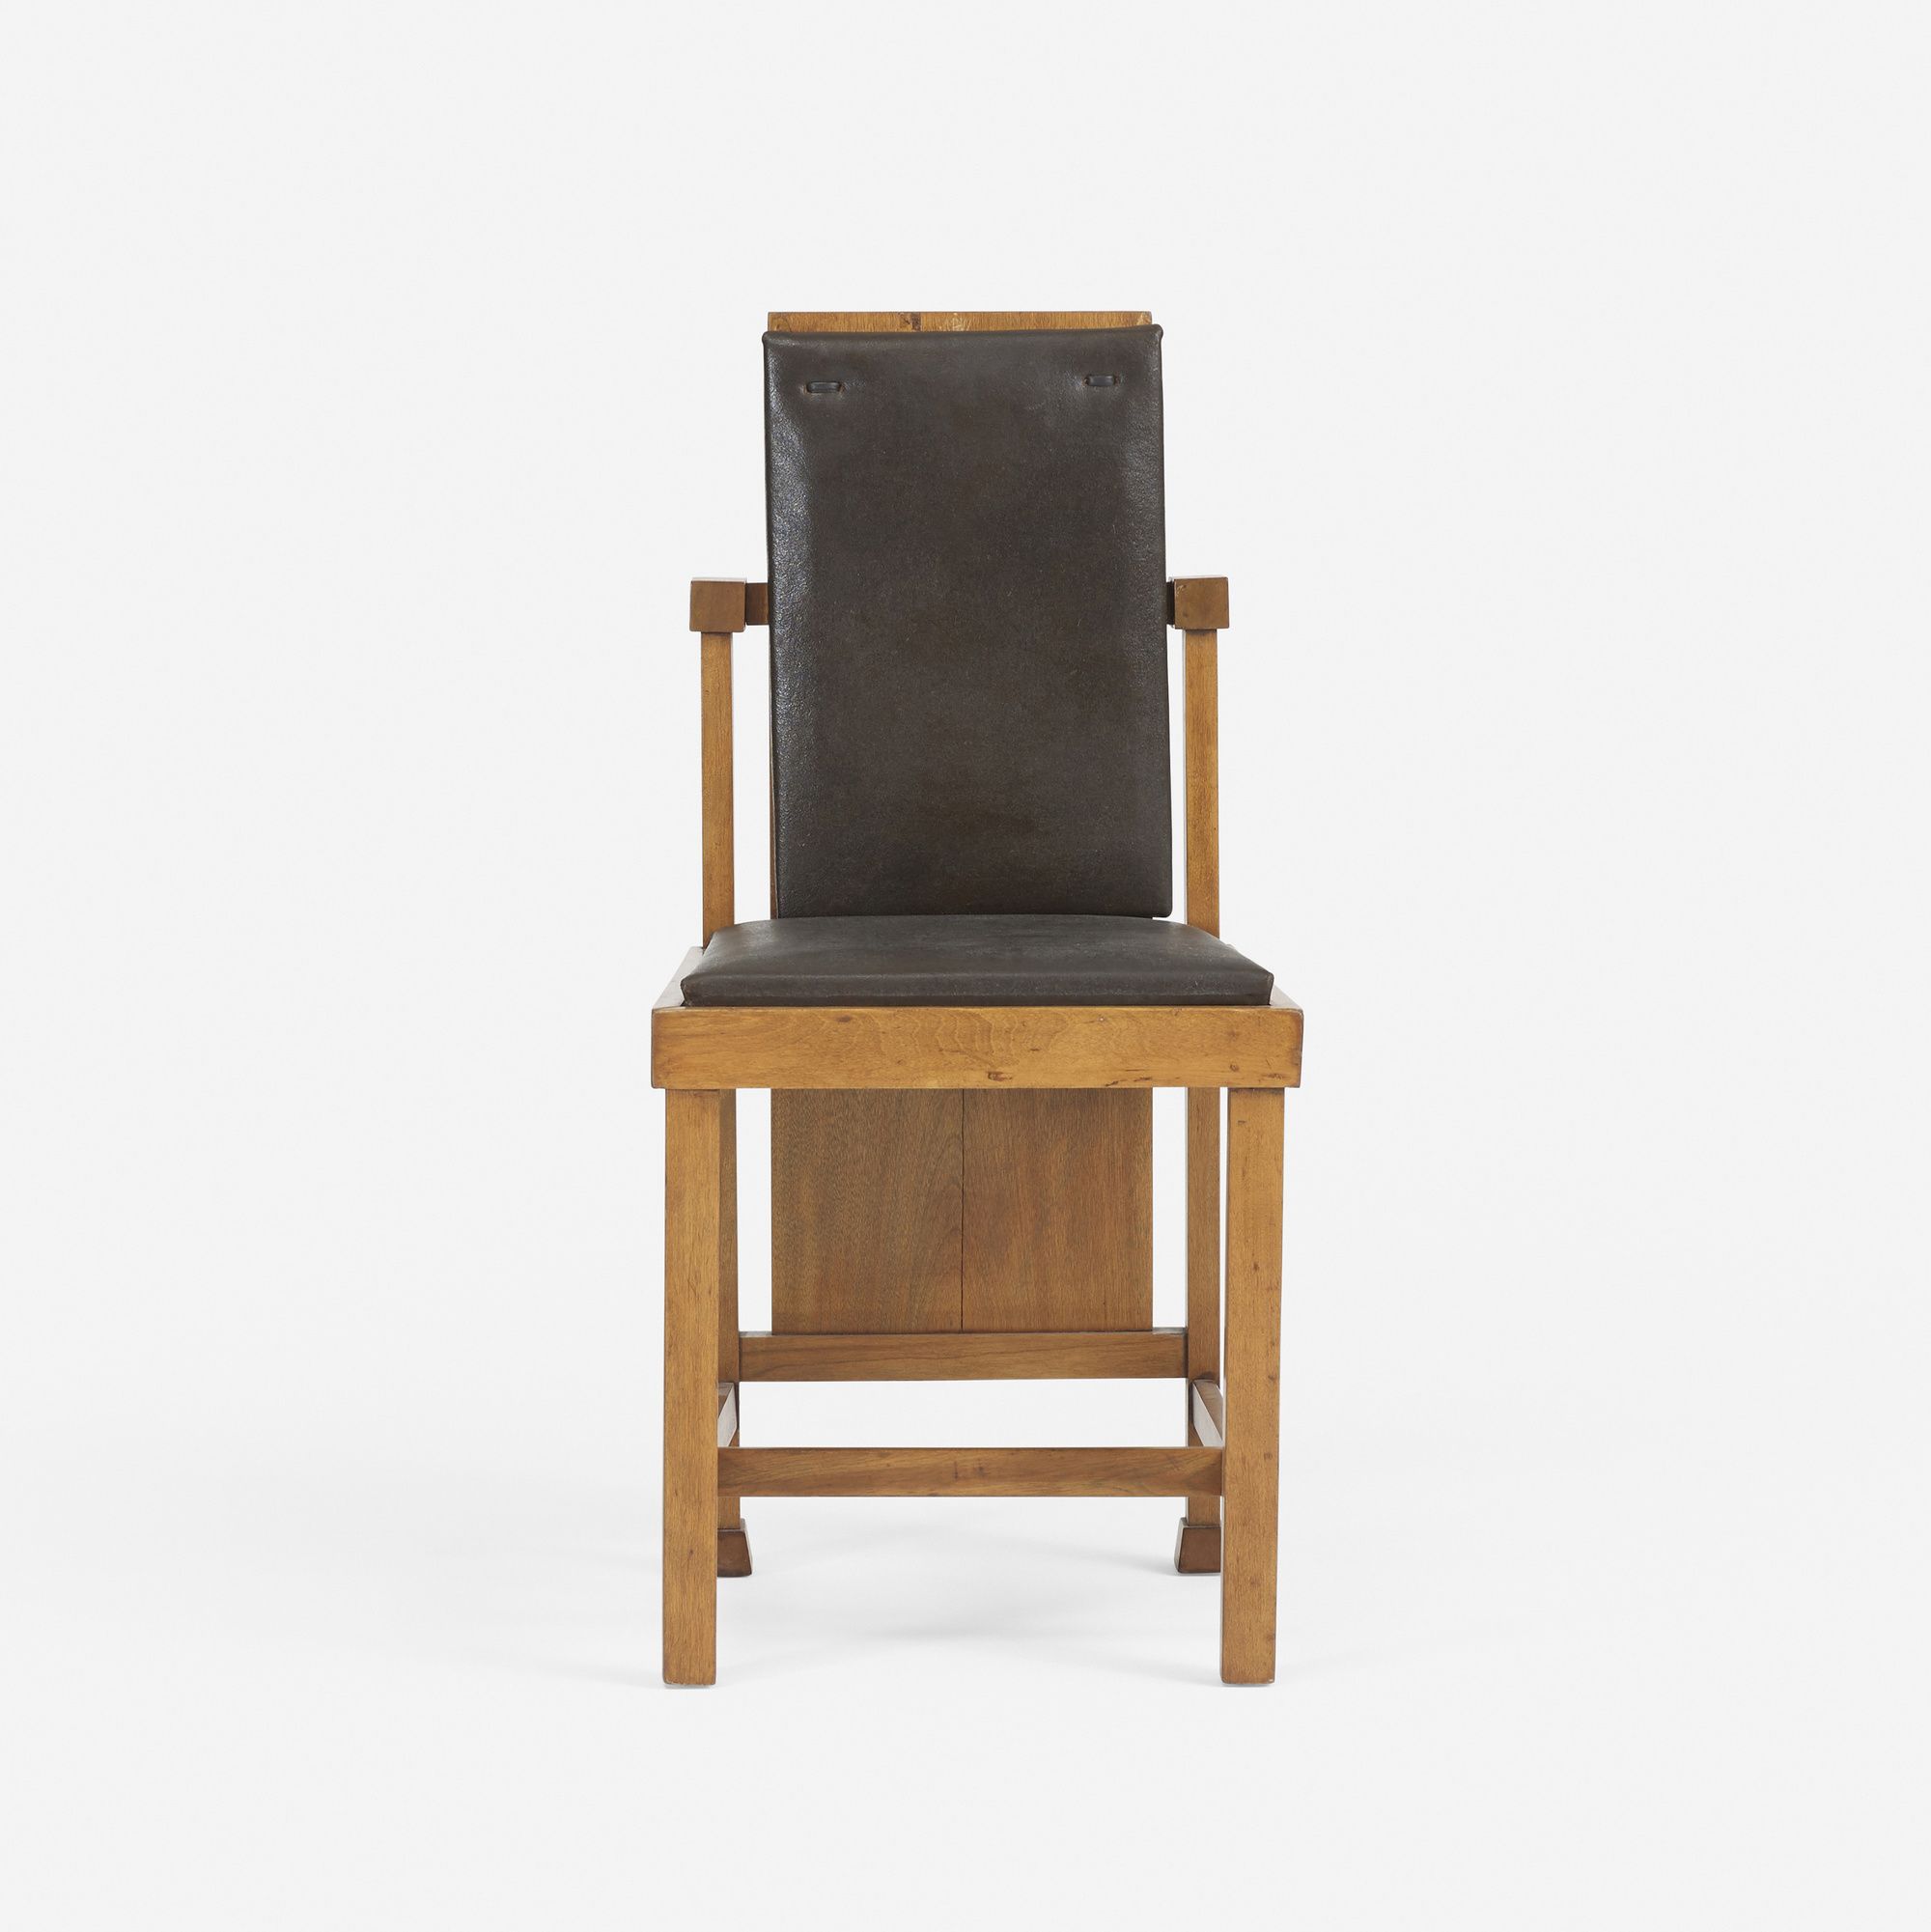 167: FRANK LLOYD WRIGHT, chair from the Avery Coonley